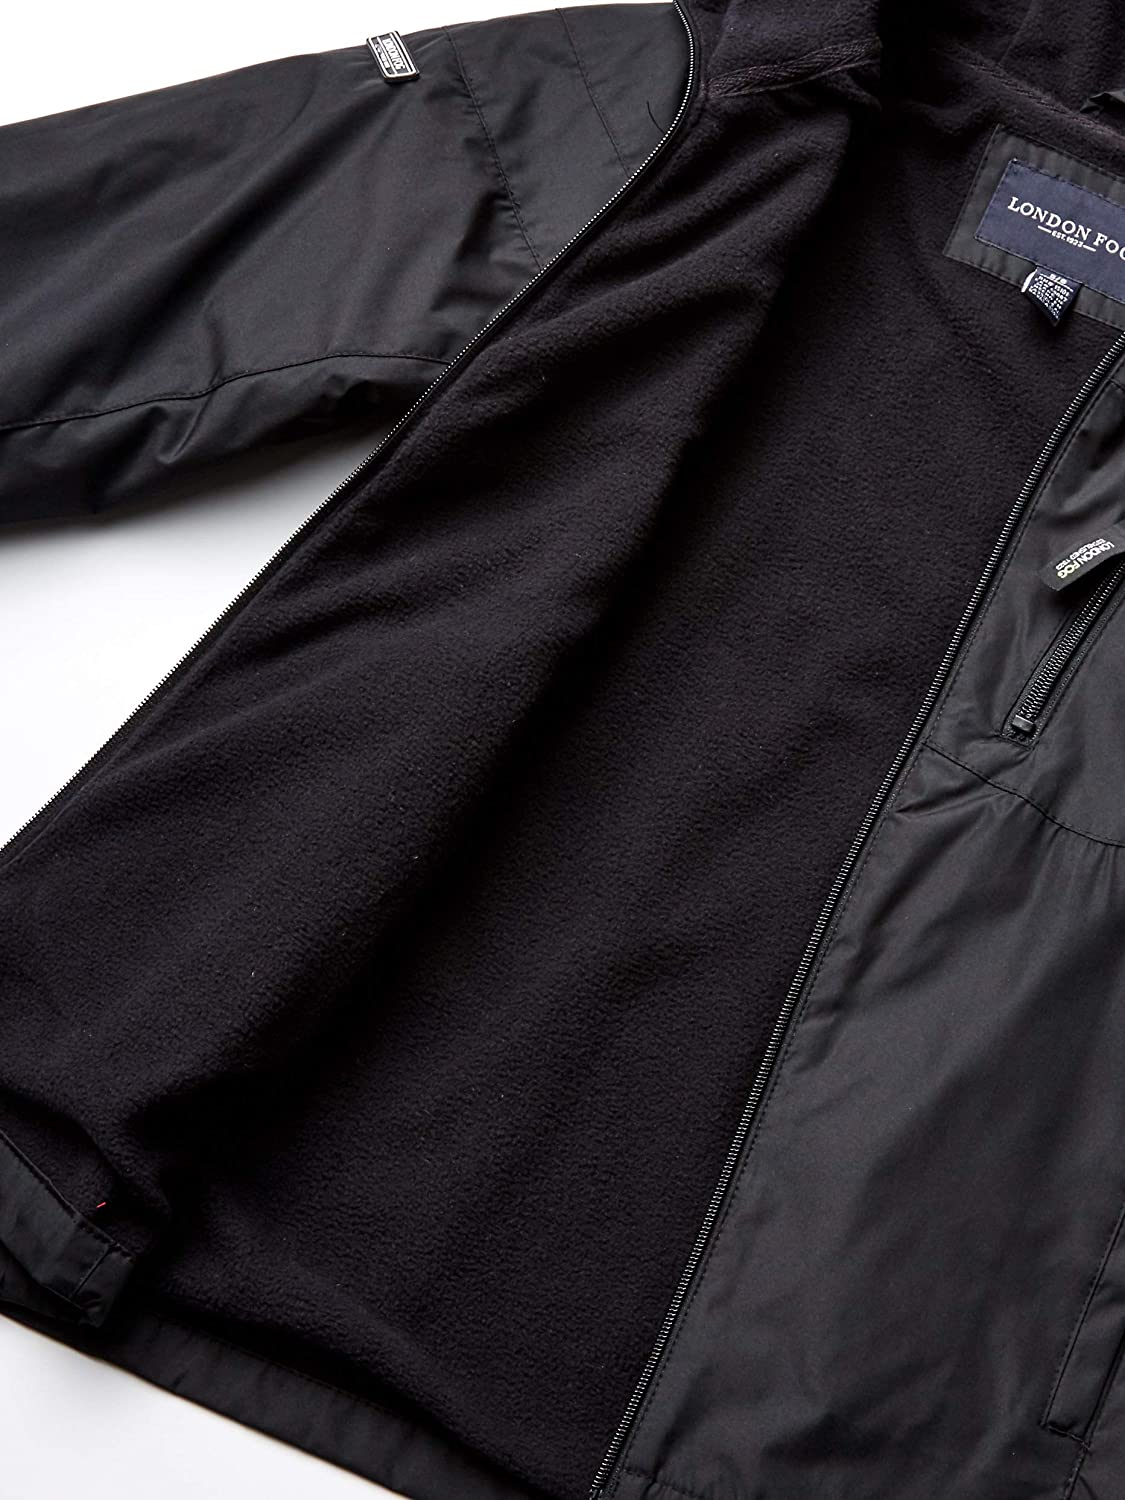 14//16 LONDON FOG Boys Big Midweight Water Resistant Hooded Jacket Black and Black